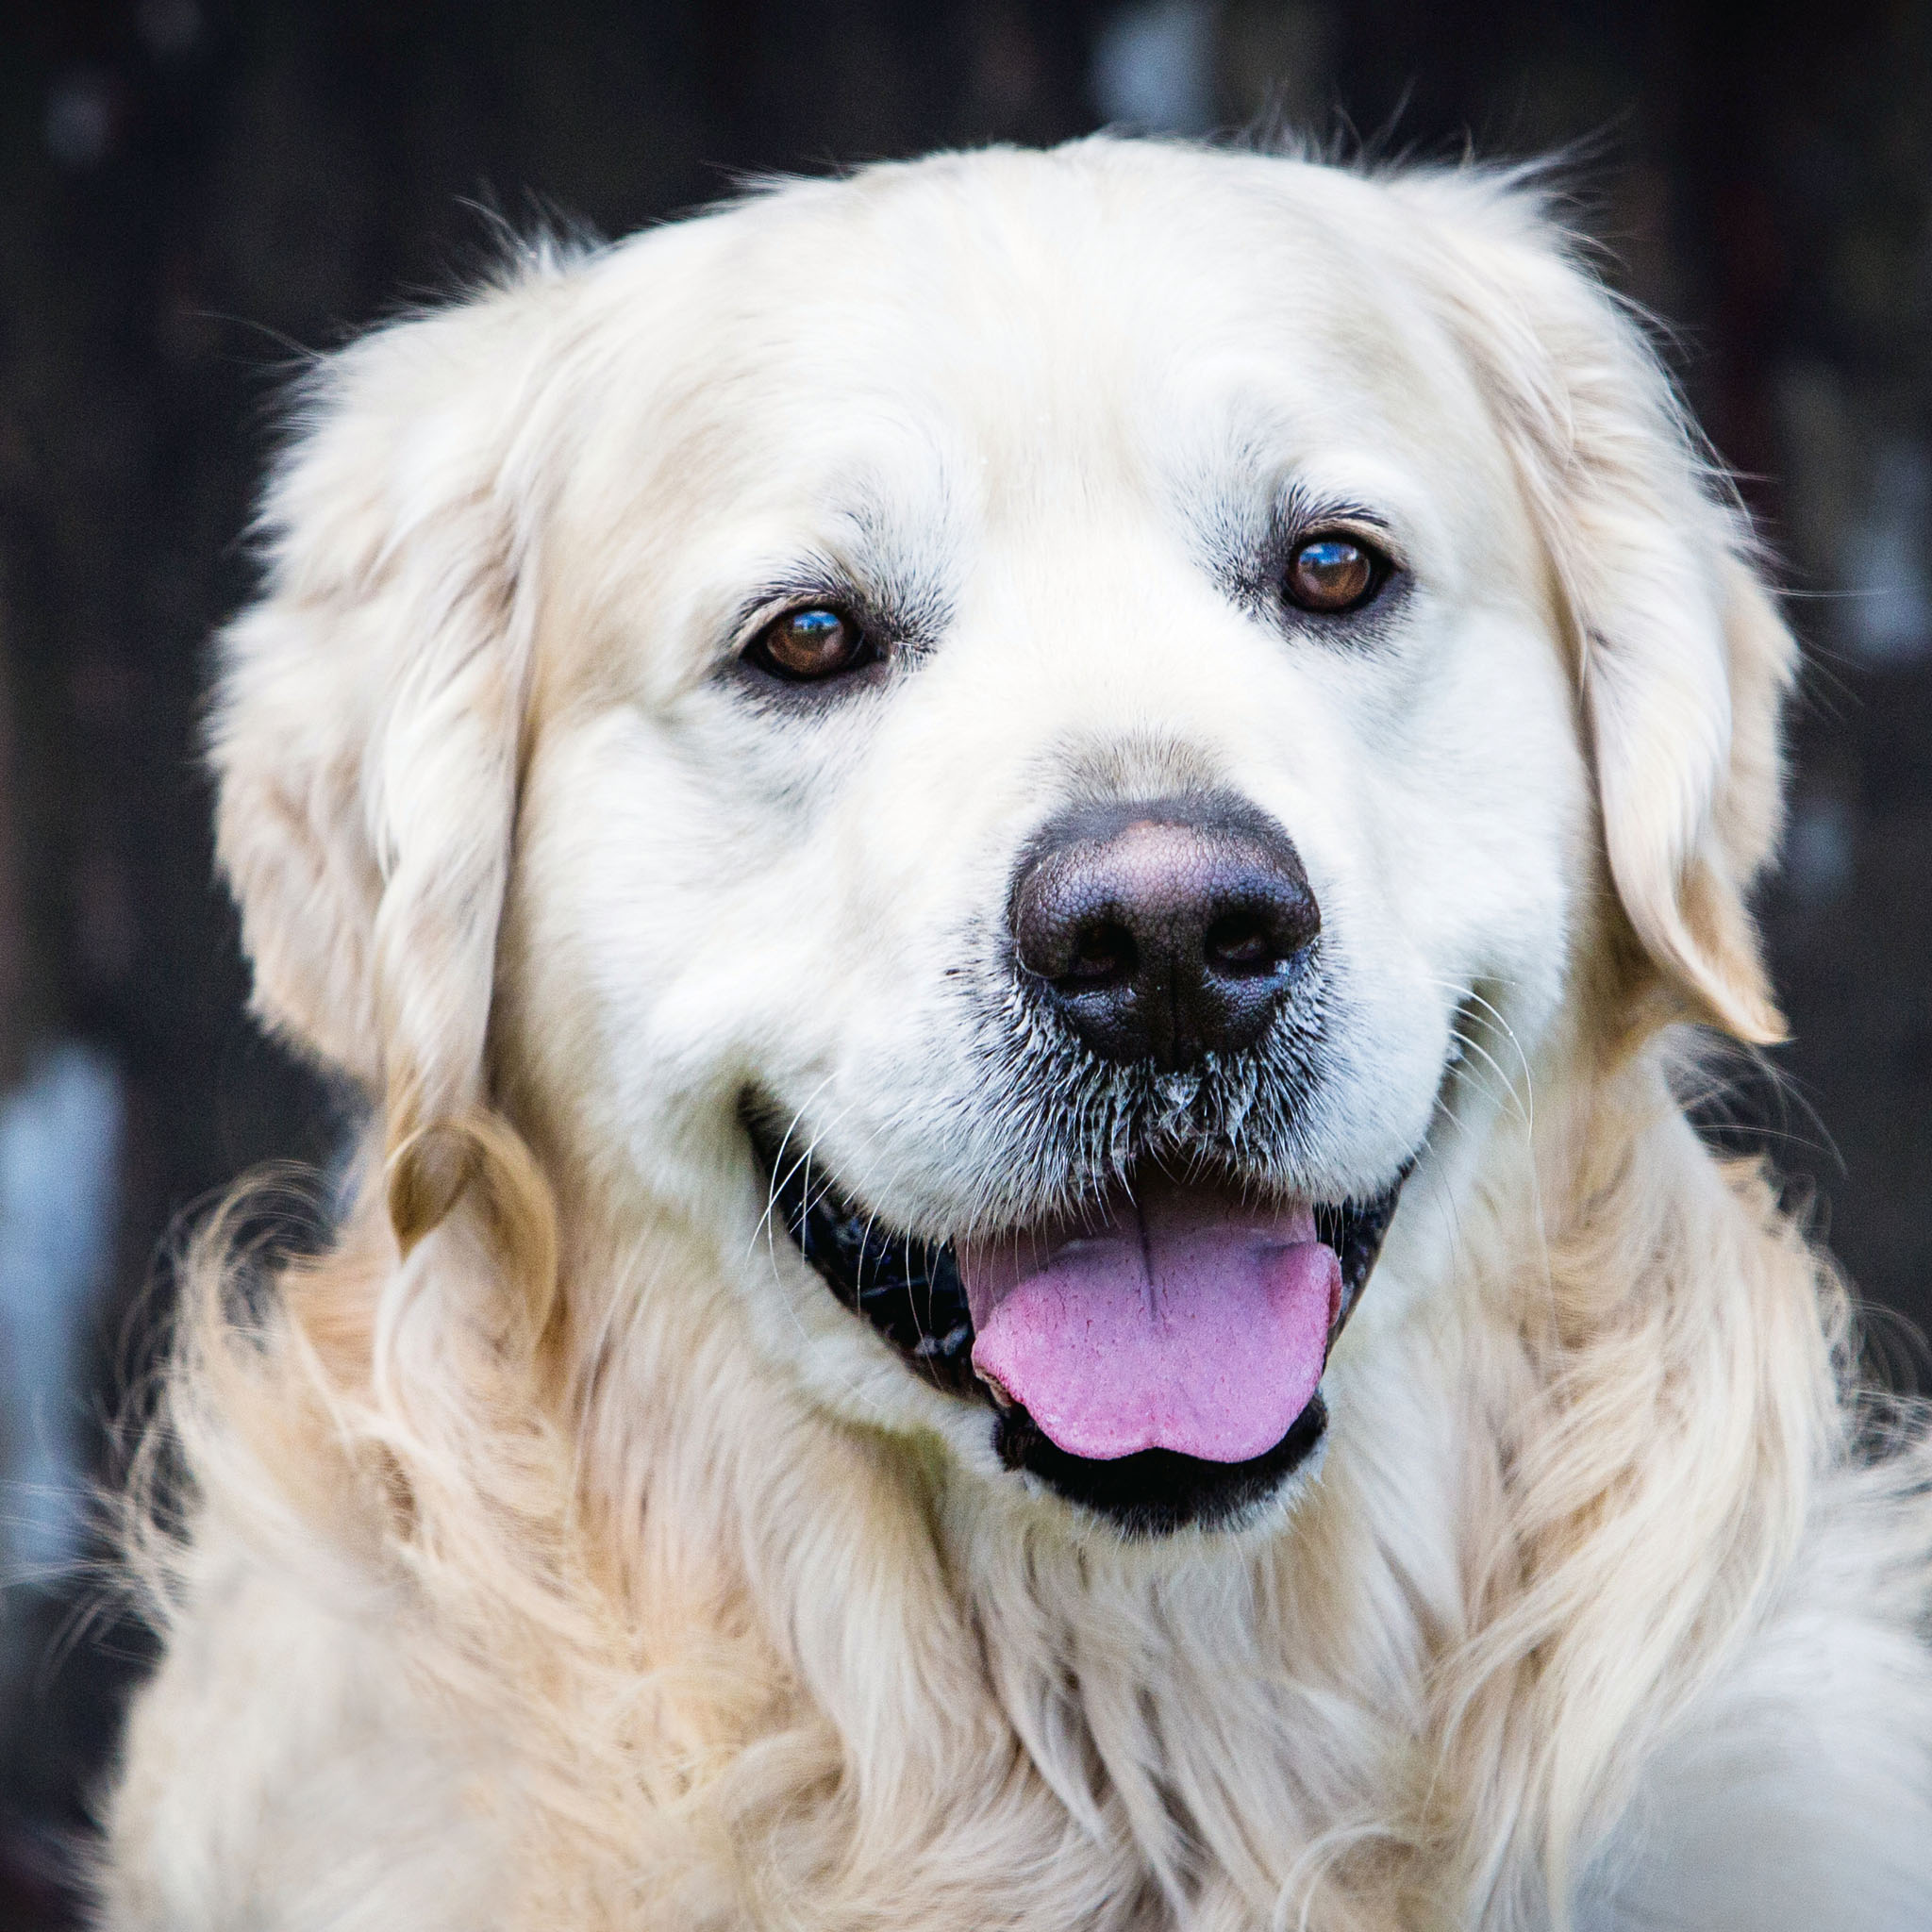 Pet portrait photography of a golden retriever dog in Holywell, North Wales